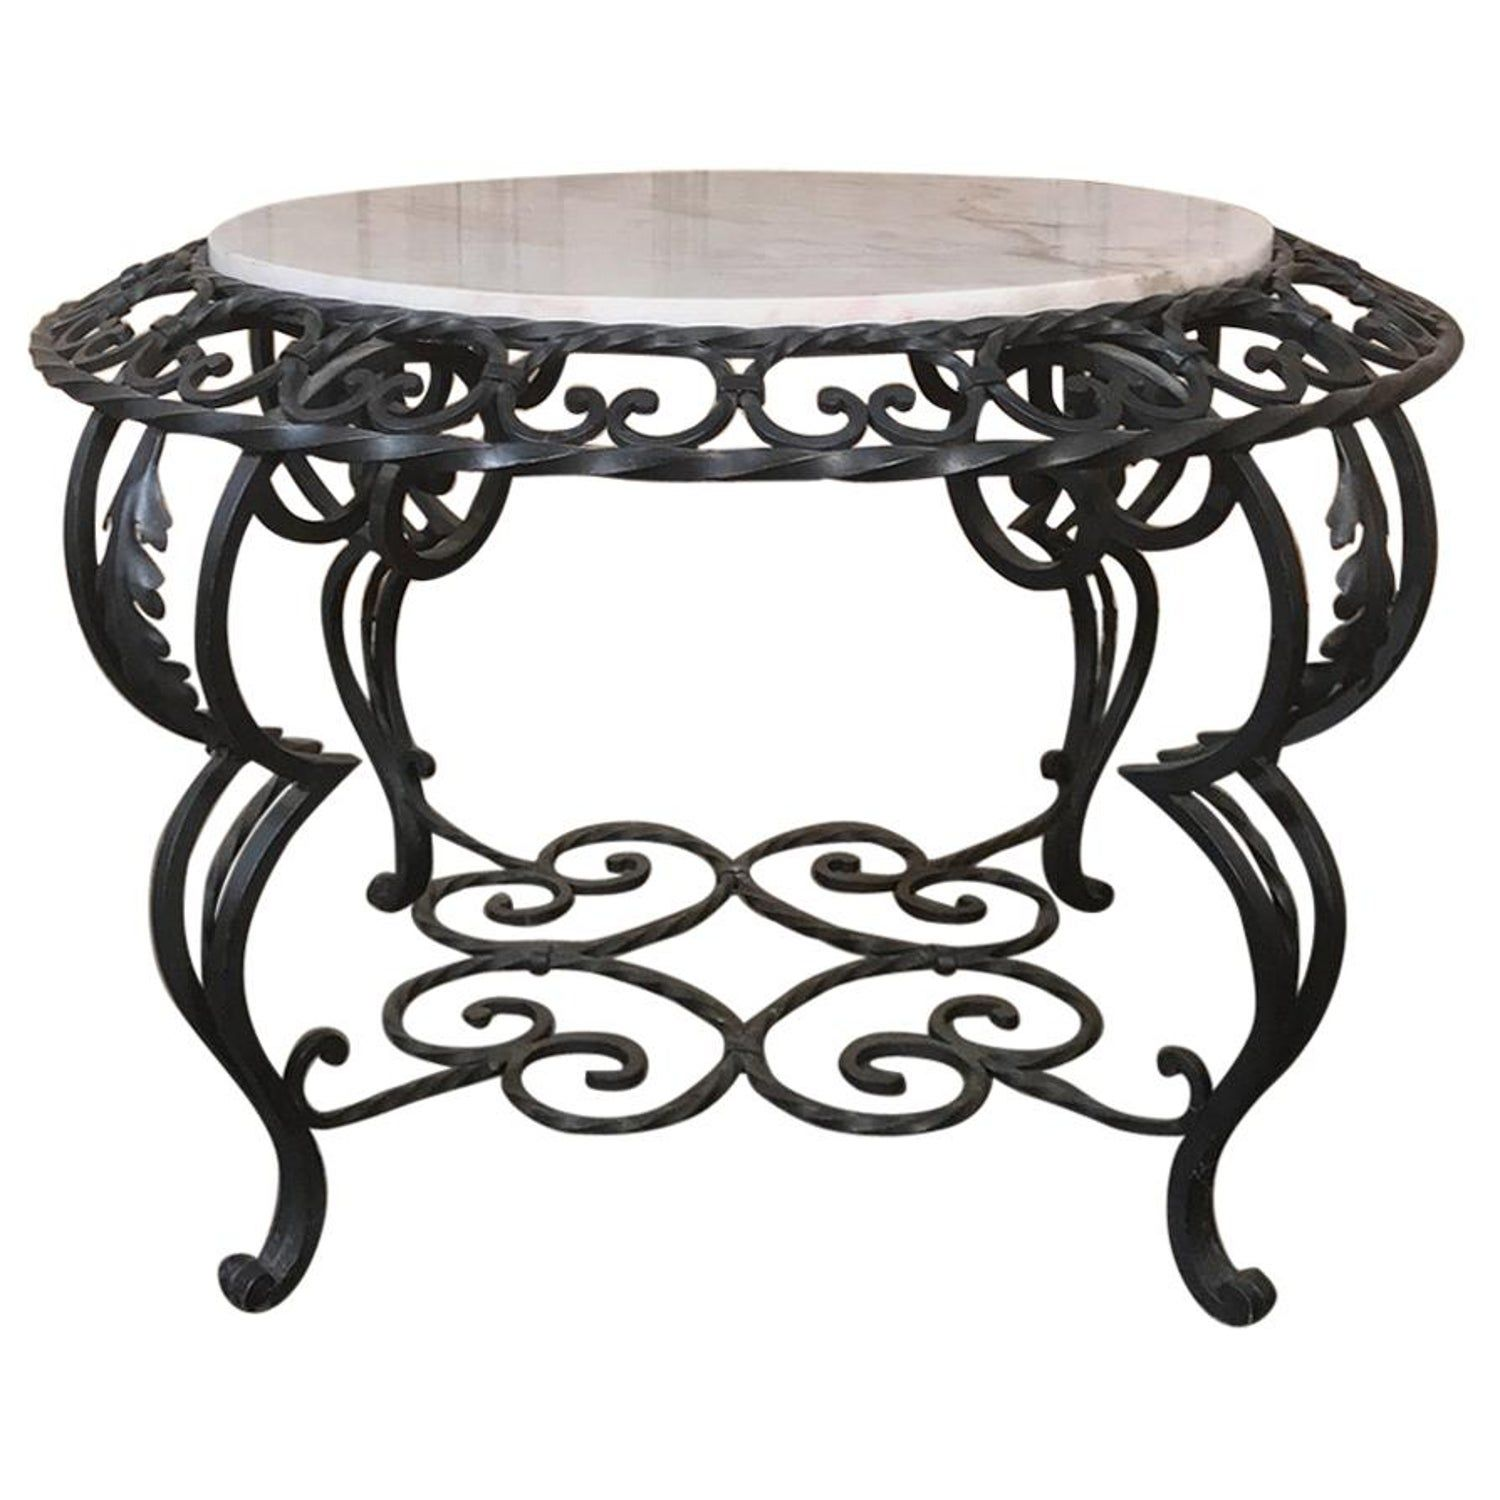 Midcentury french wrought iron marbletop coffee table in